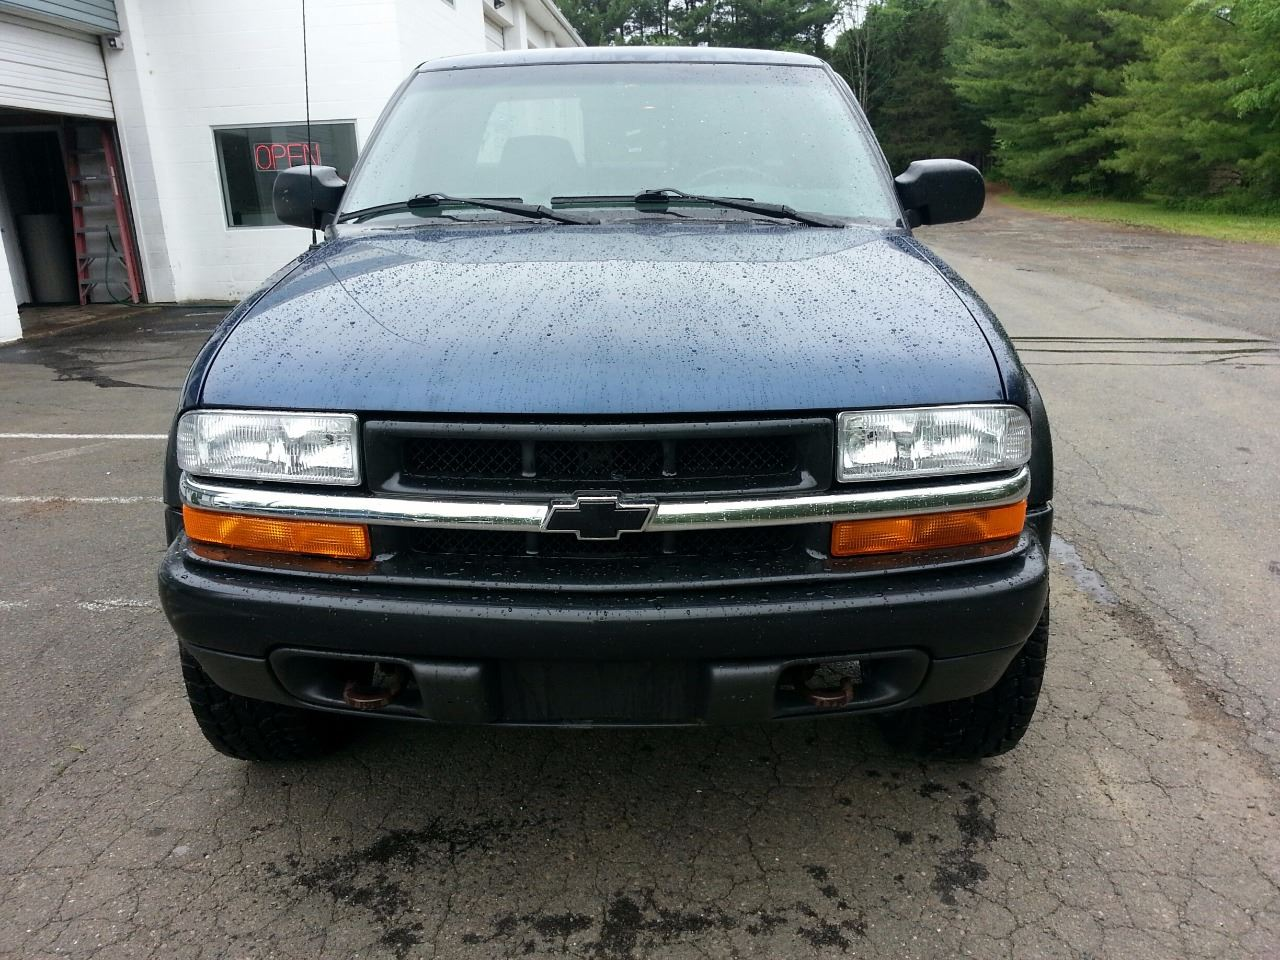 All Chevy 2000 chevrolet s-10 : 2000 Chevrolet S-10 3dr LS Wide Stance 4WD Extended Cab SB In ...